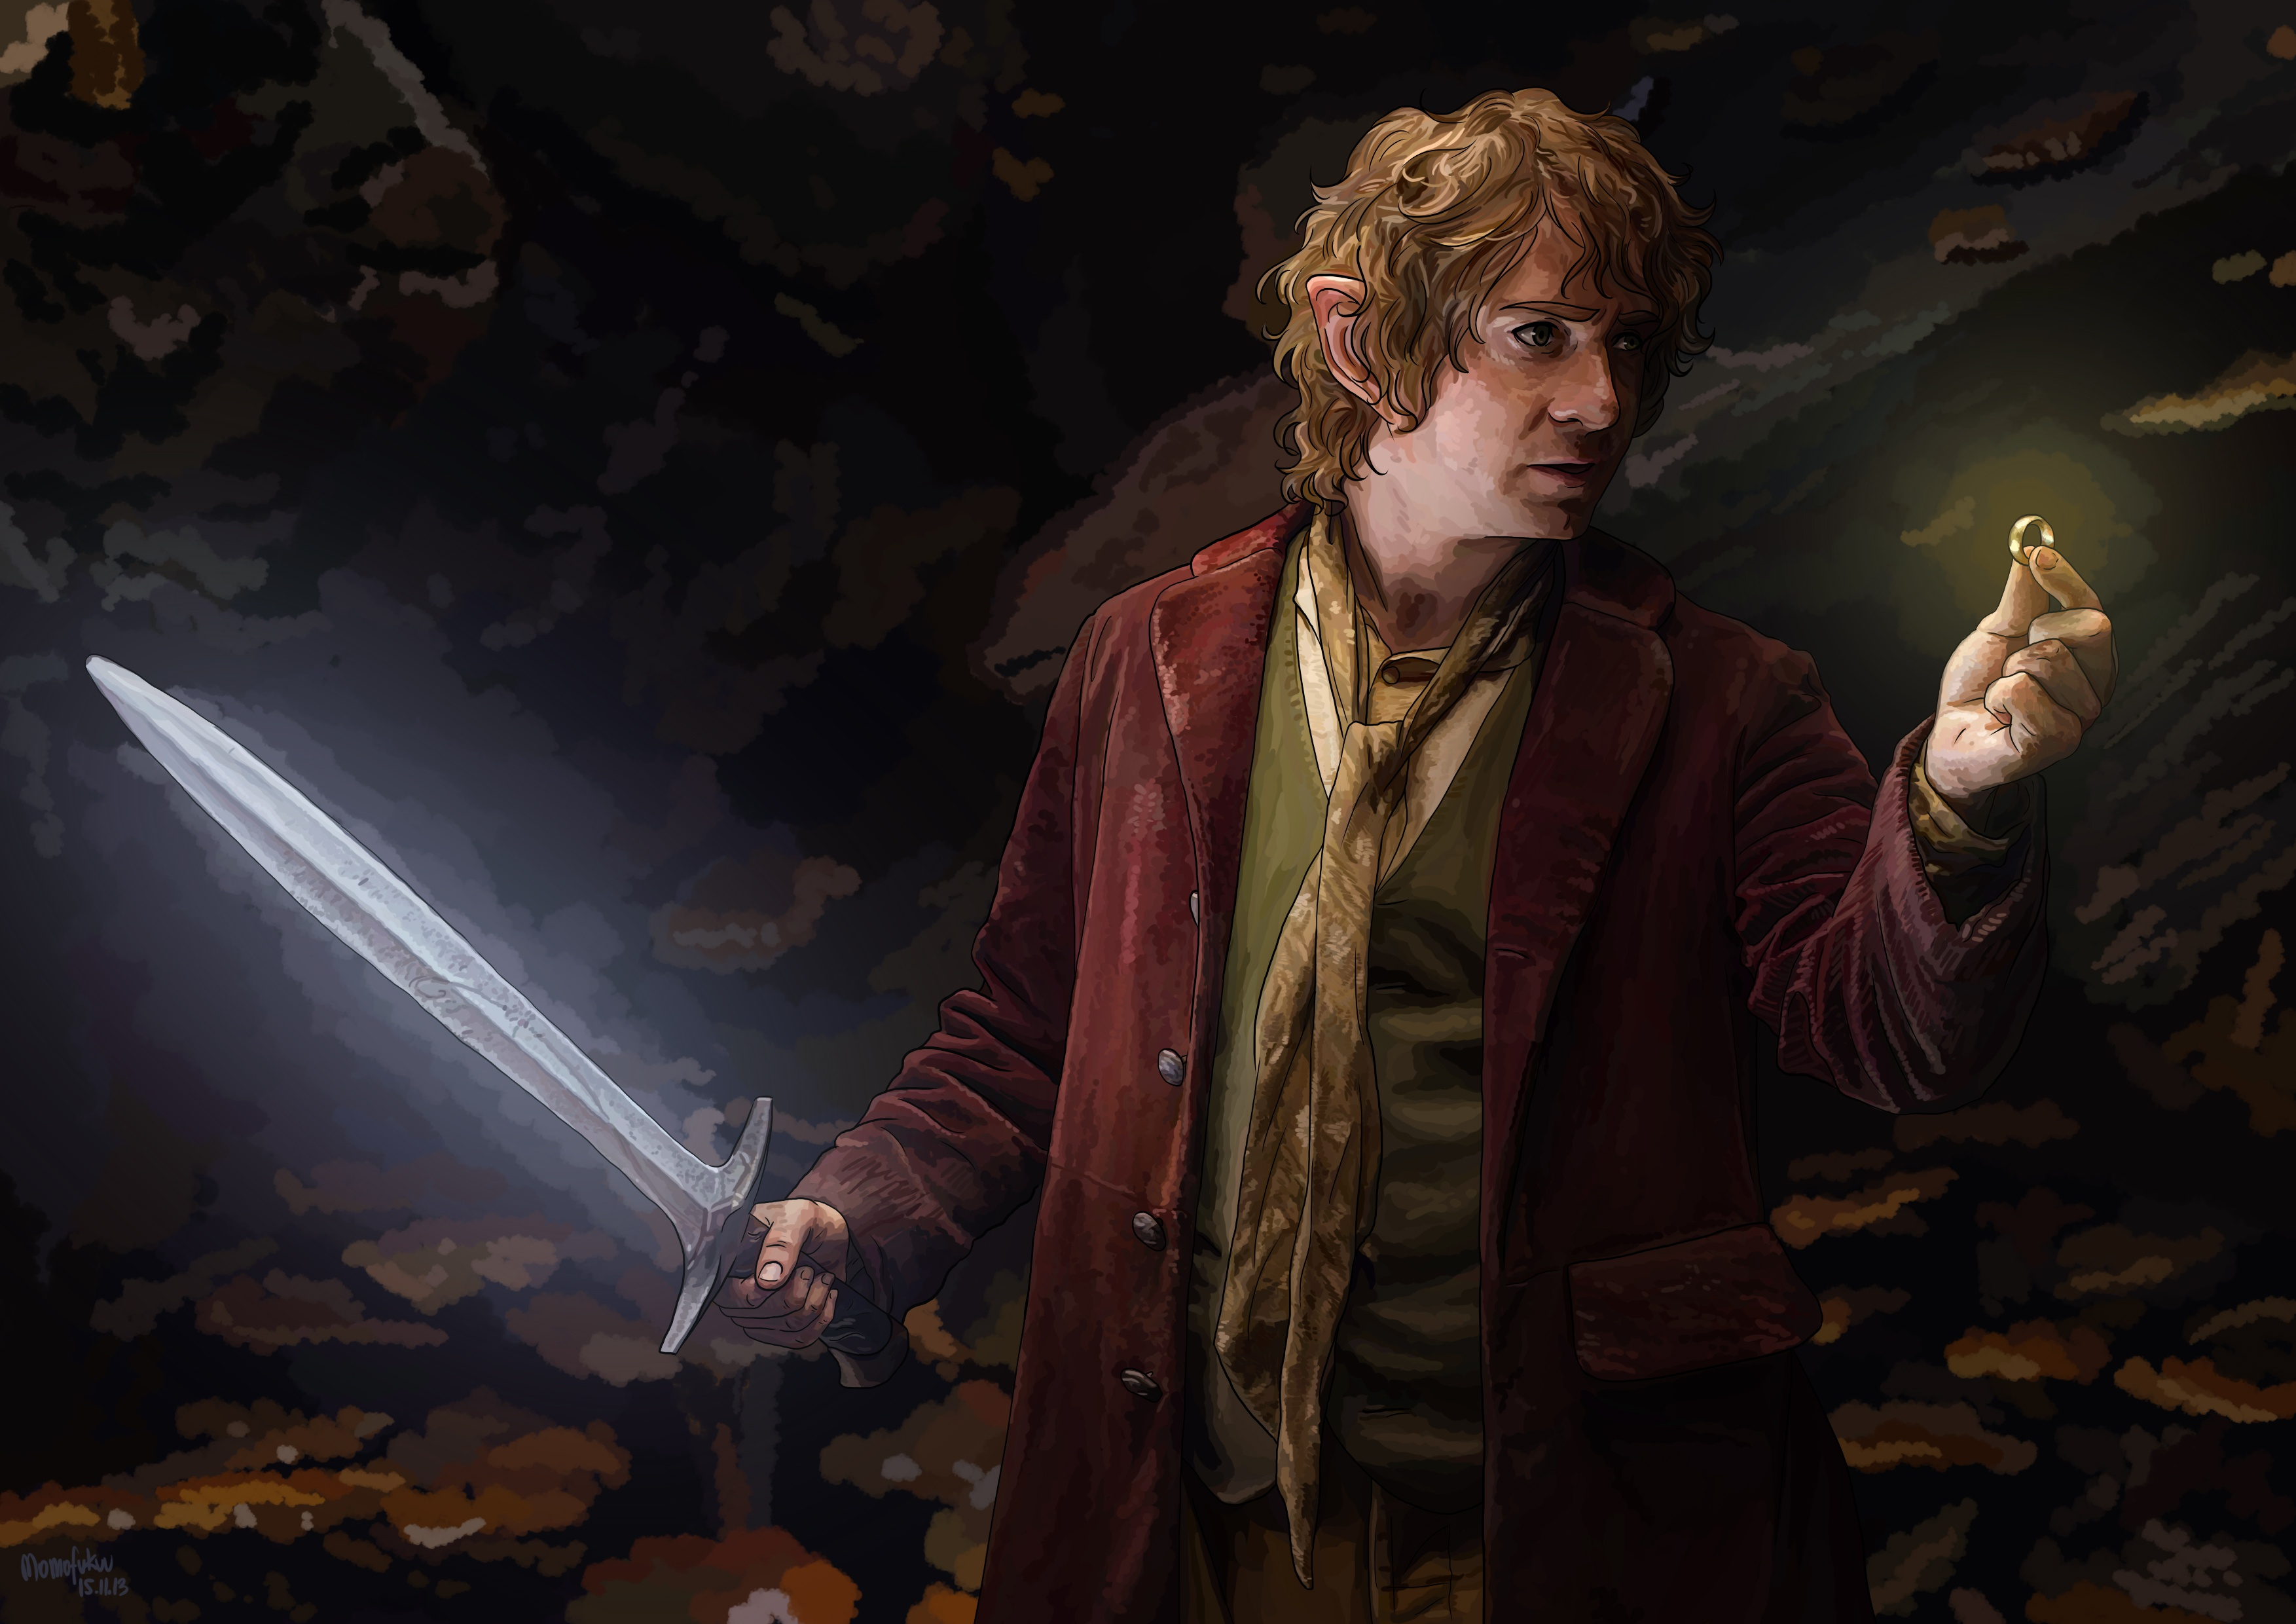 an analysis of the story about a hobbit bilbo baggins